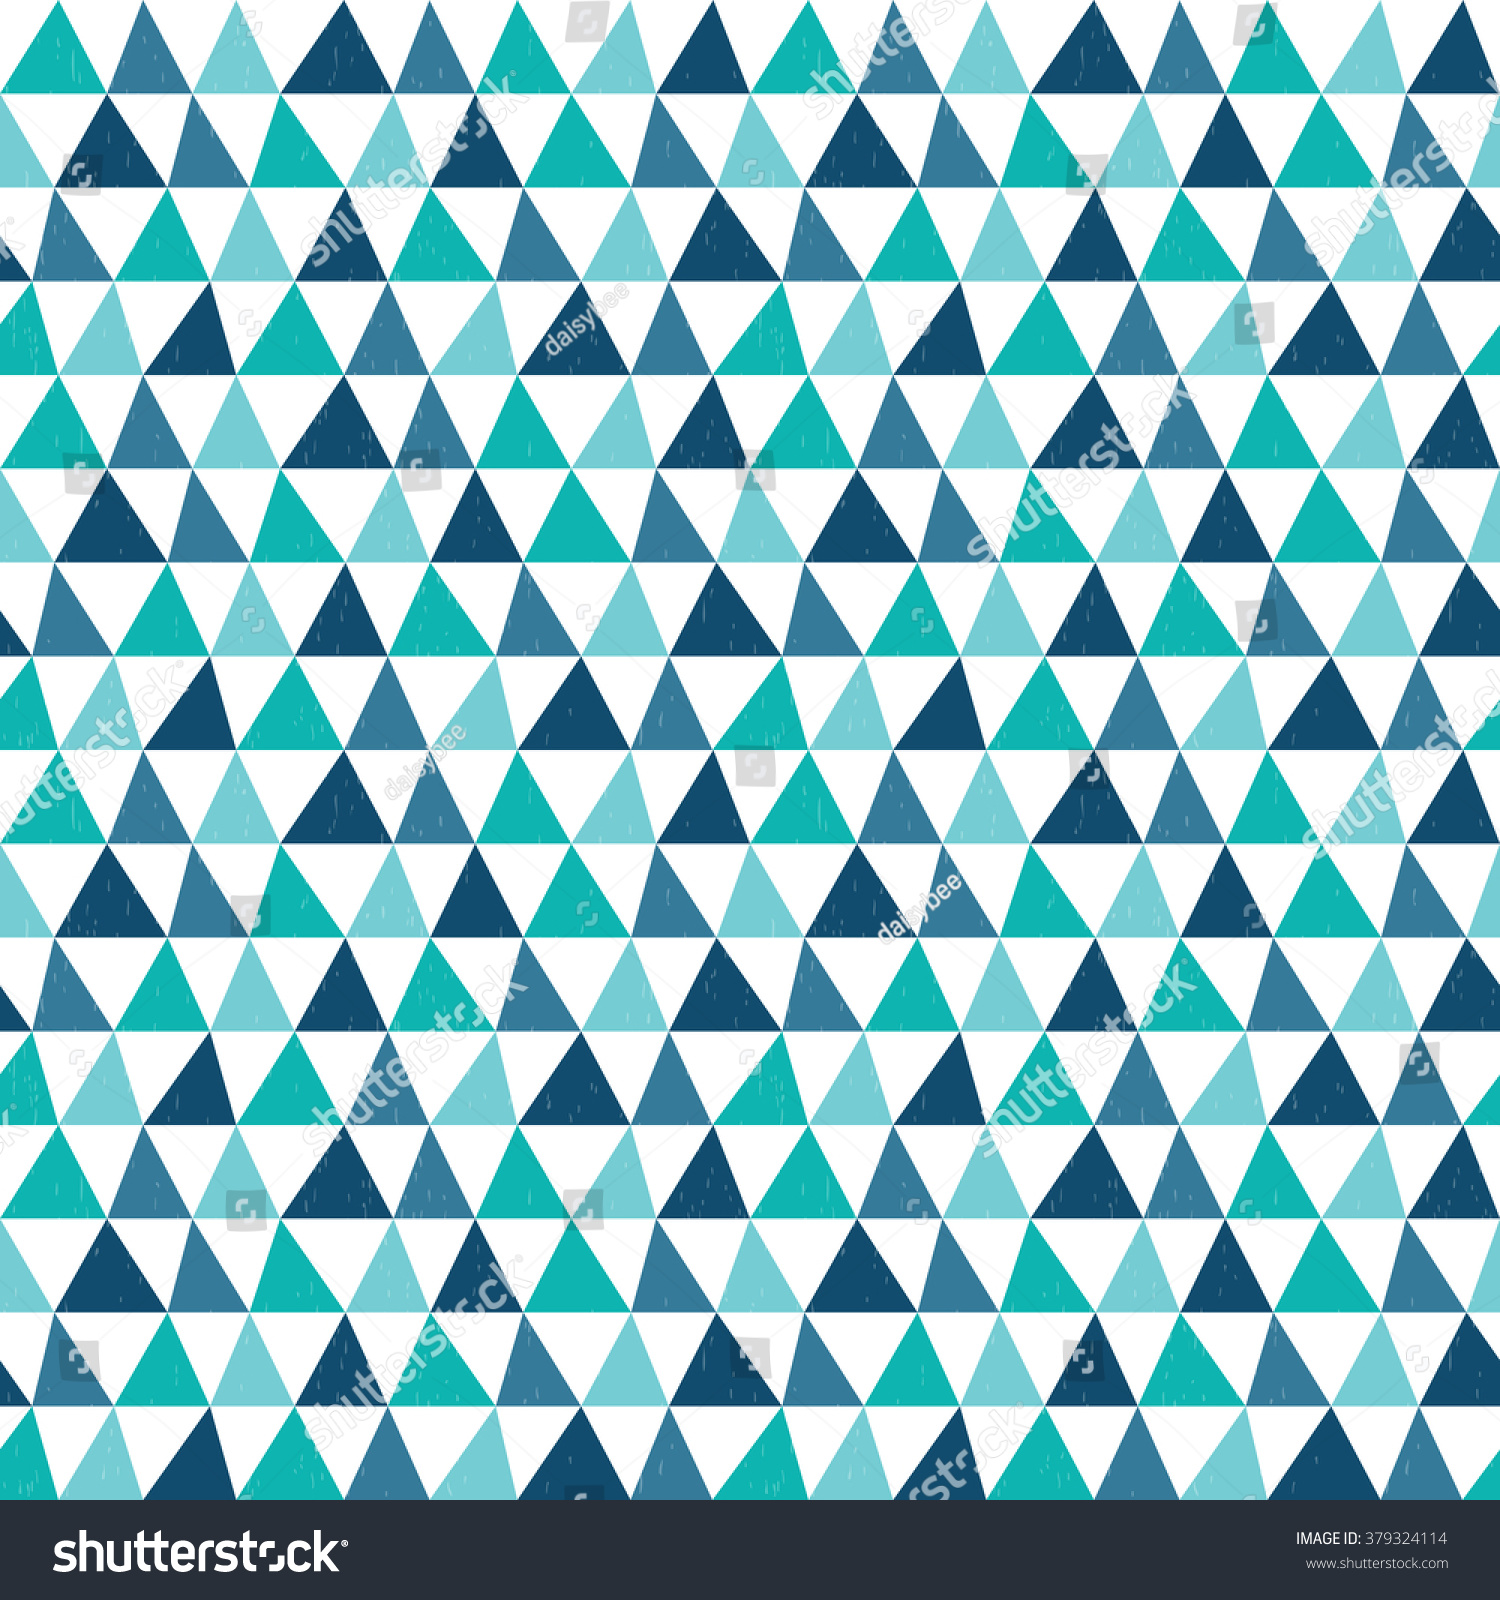 Blue Tribal Wallpapers: Cute Seamless Tribal Geometric Background Pattern Stock